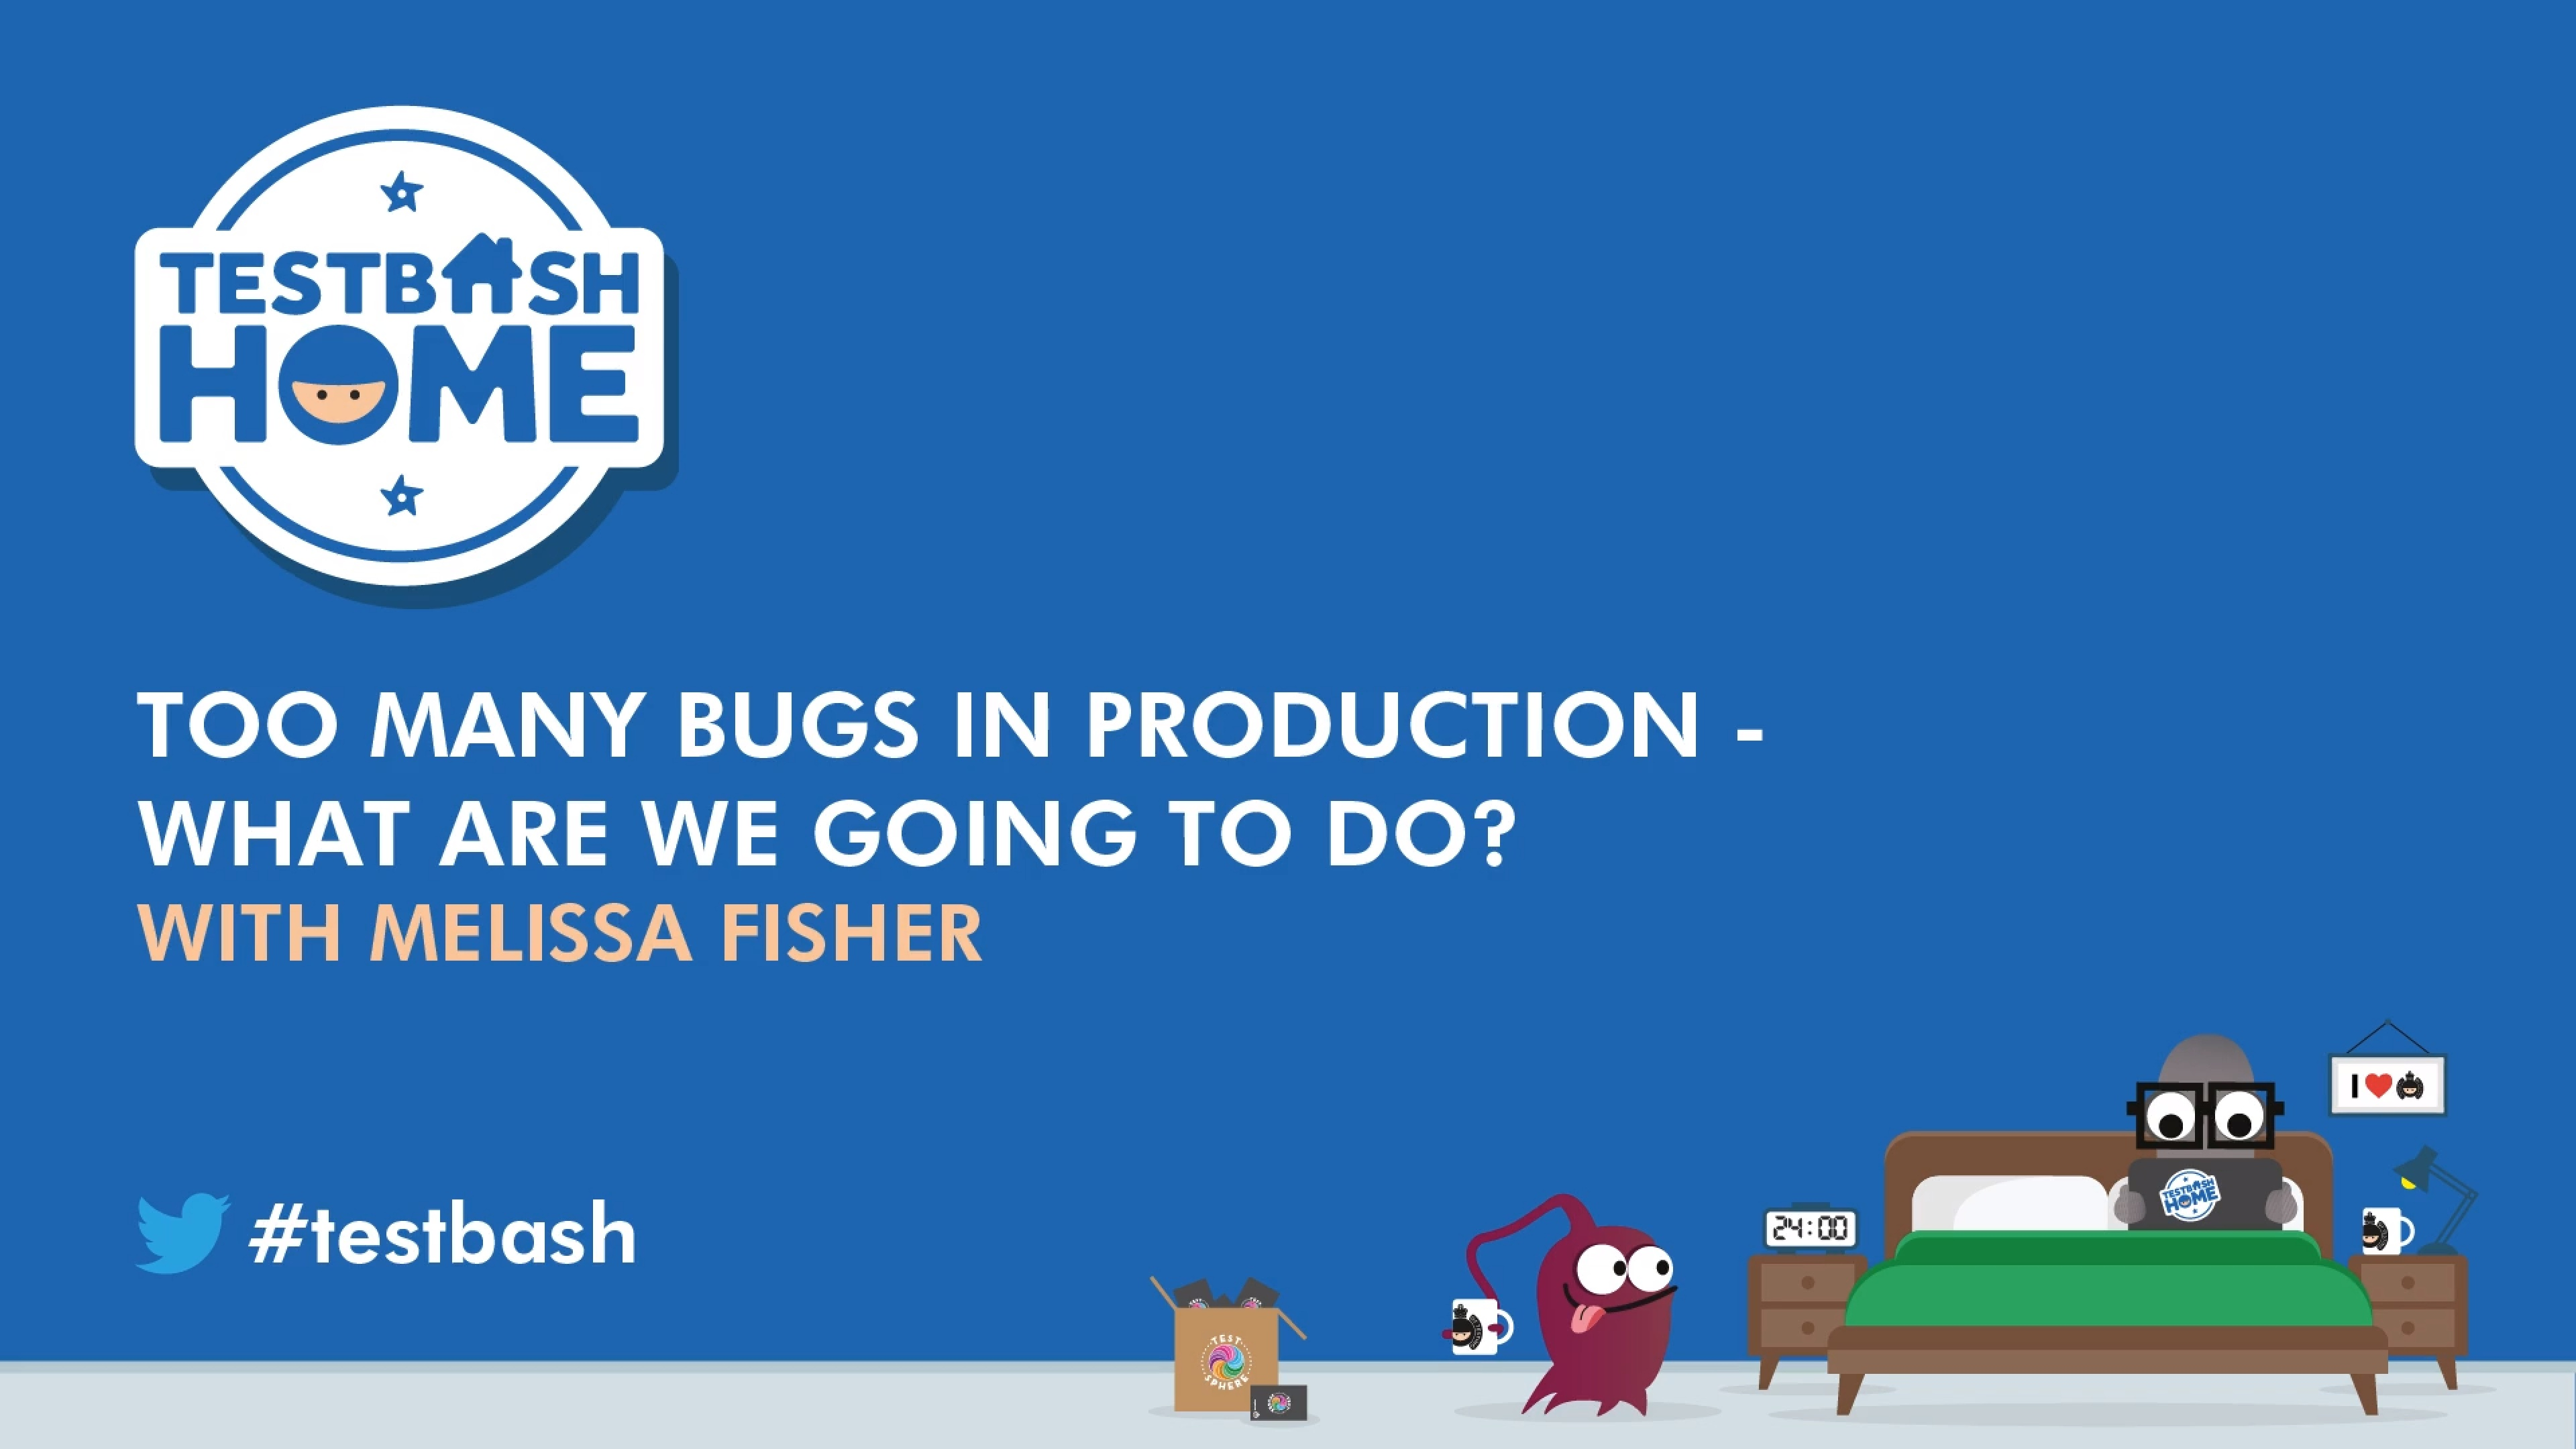 Too Many Bugs in Production - What Are We Going to Do?